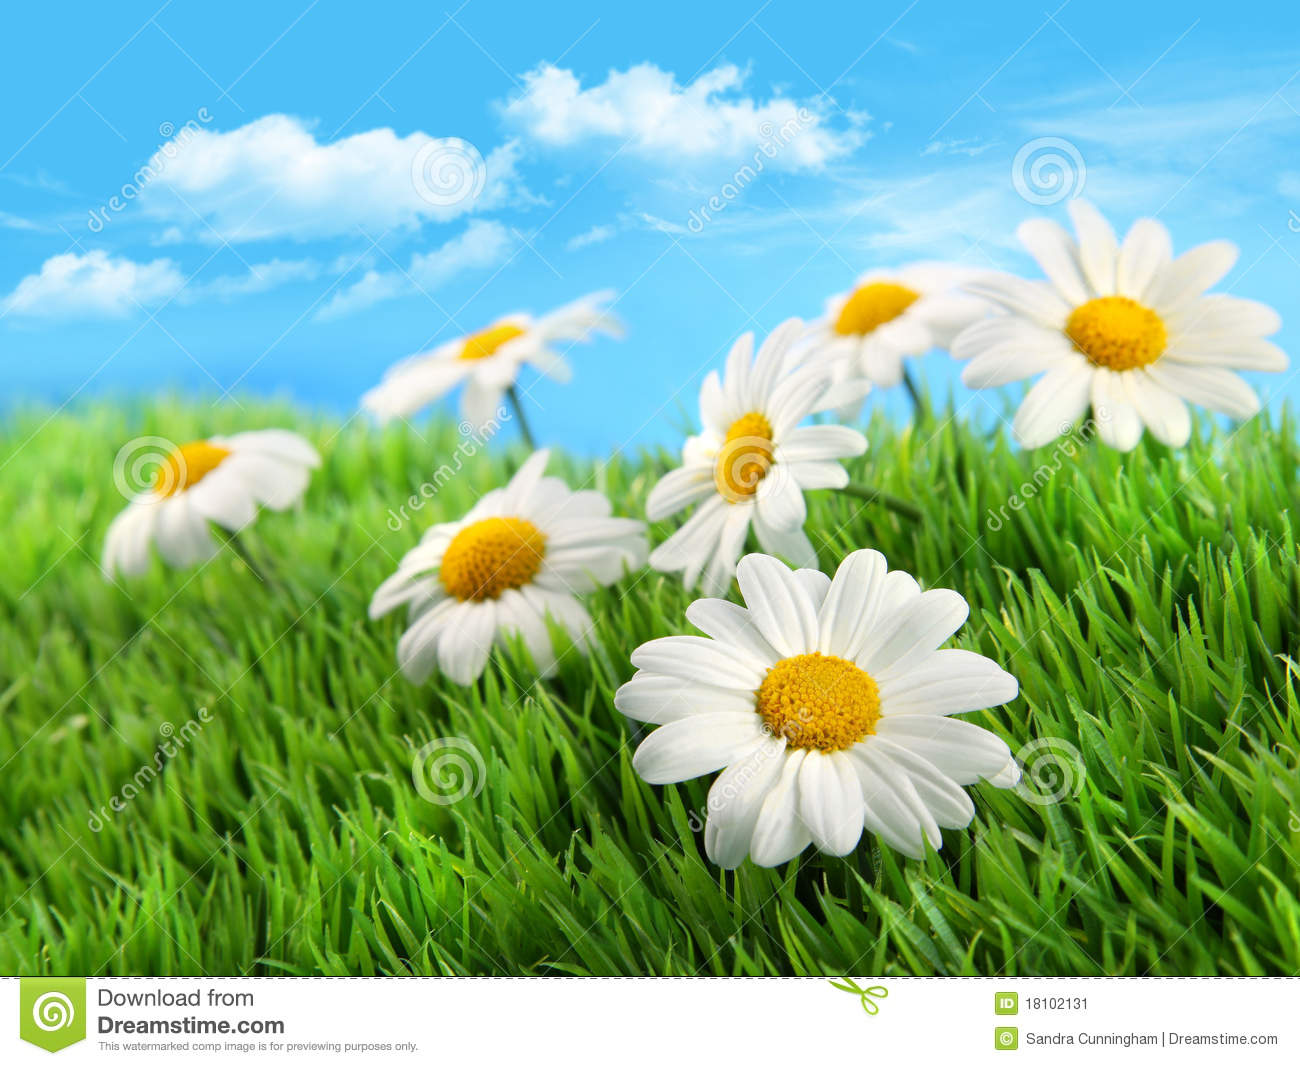 Daisies In Grass Against A Blue Sky Stock Image Image